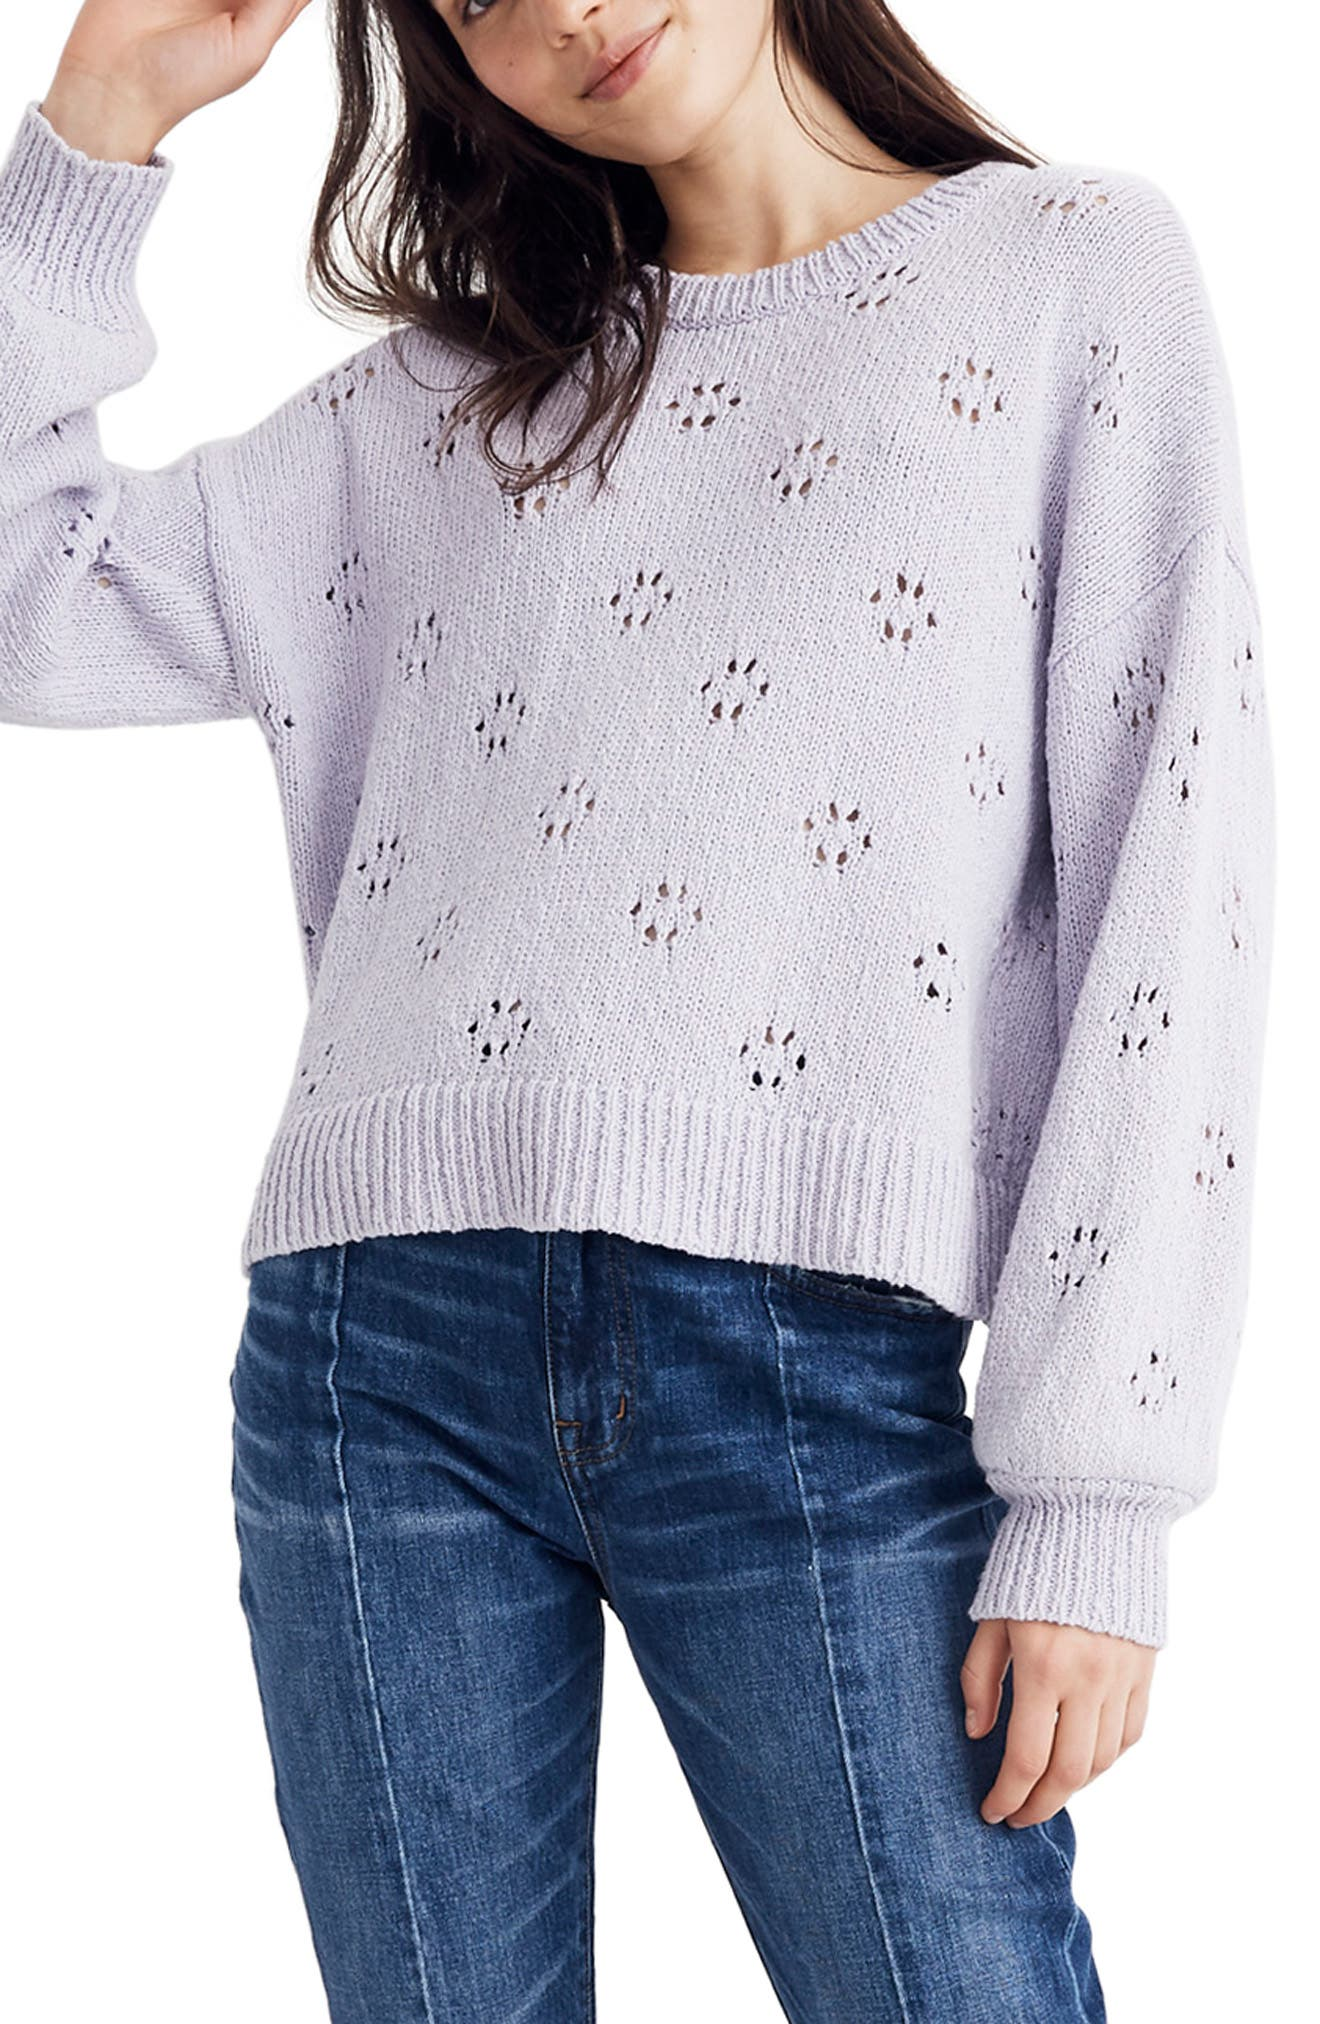 MADEWELL, Floral Pointelle Pullover Sweater, Main thumbnail 1, color, SUNDRENCHED LILAC